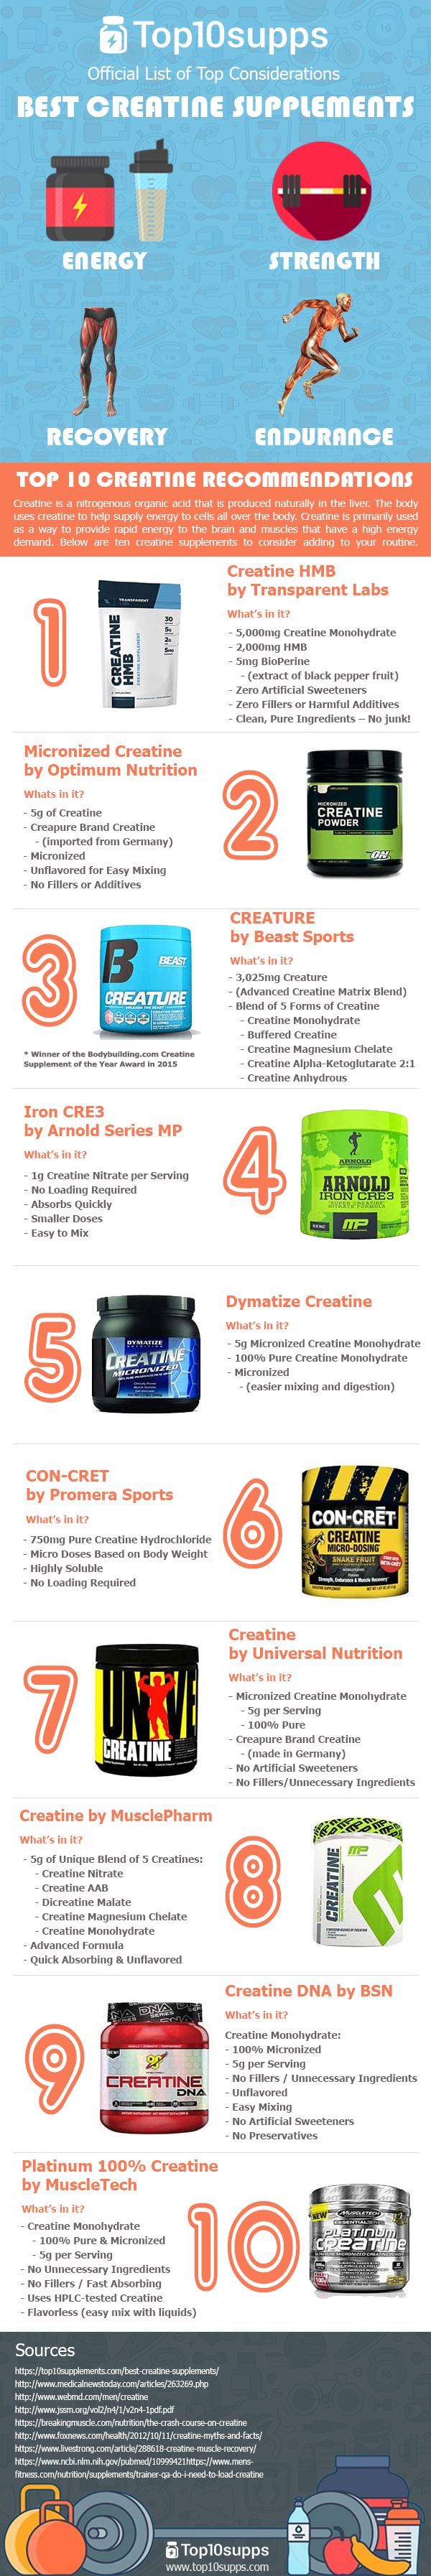 Choosing a Creatine Supplement - Top 10 Considerations #infographic http://bit.ly/2mvUxoF